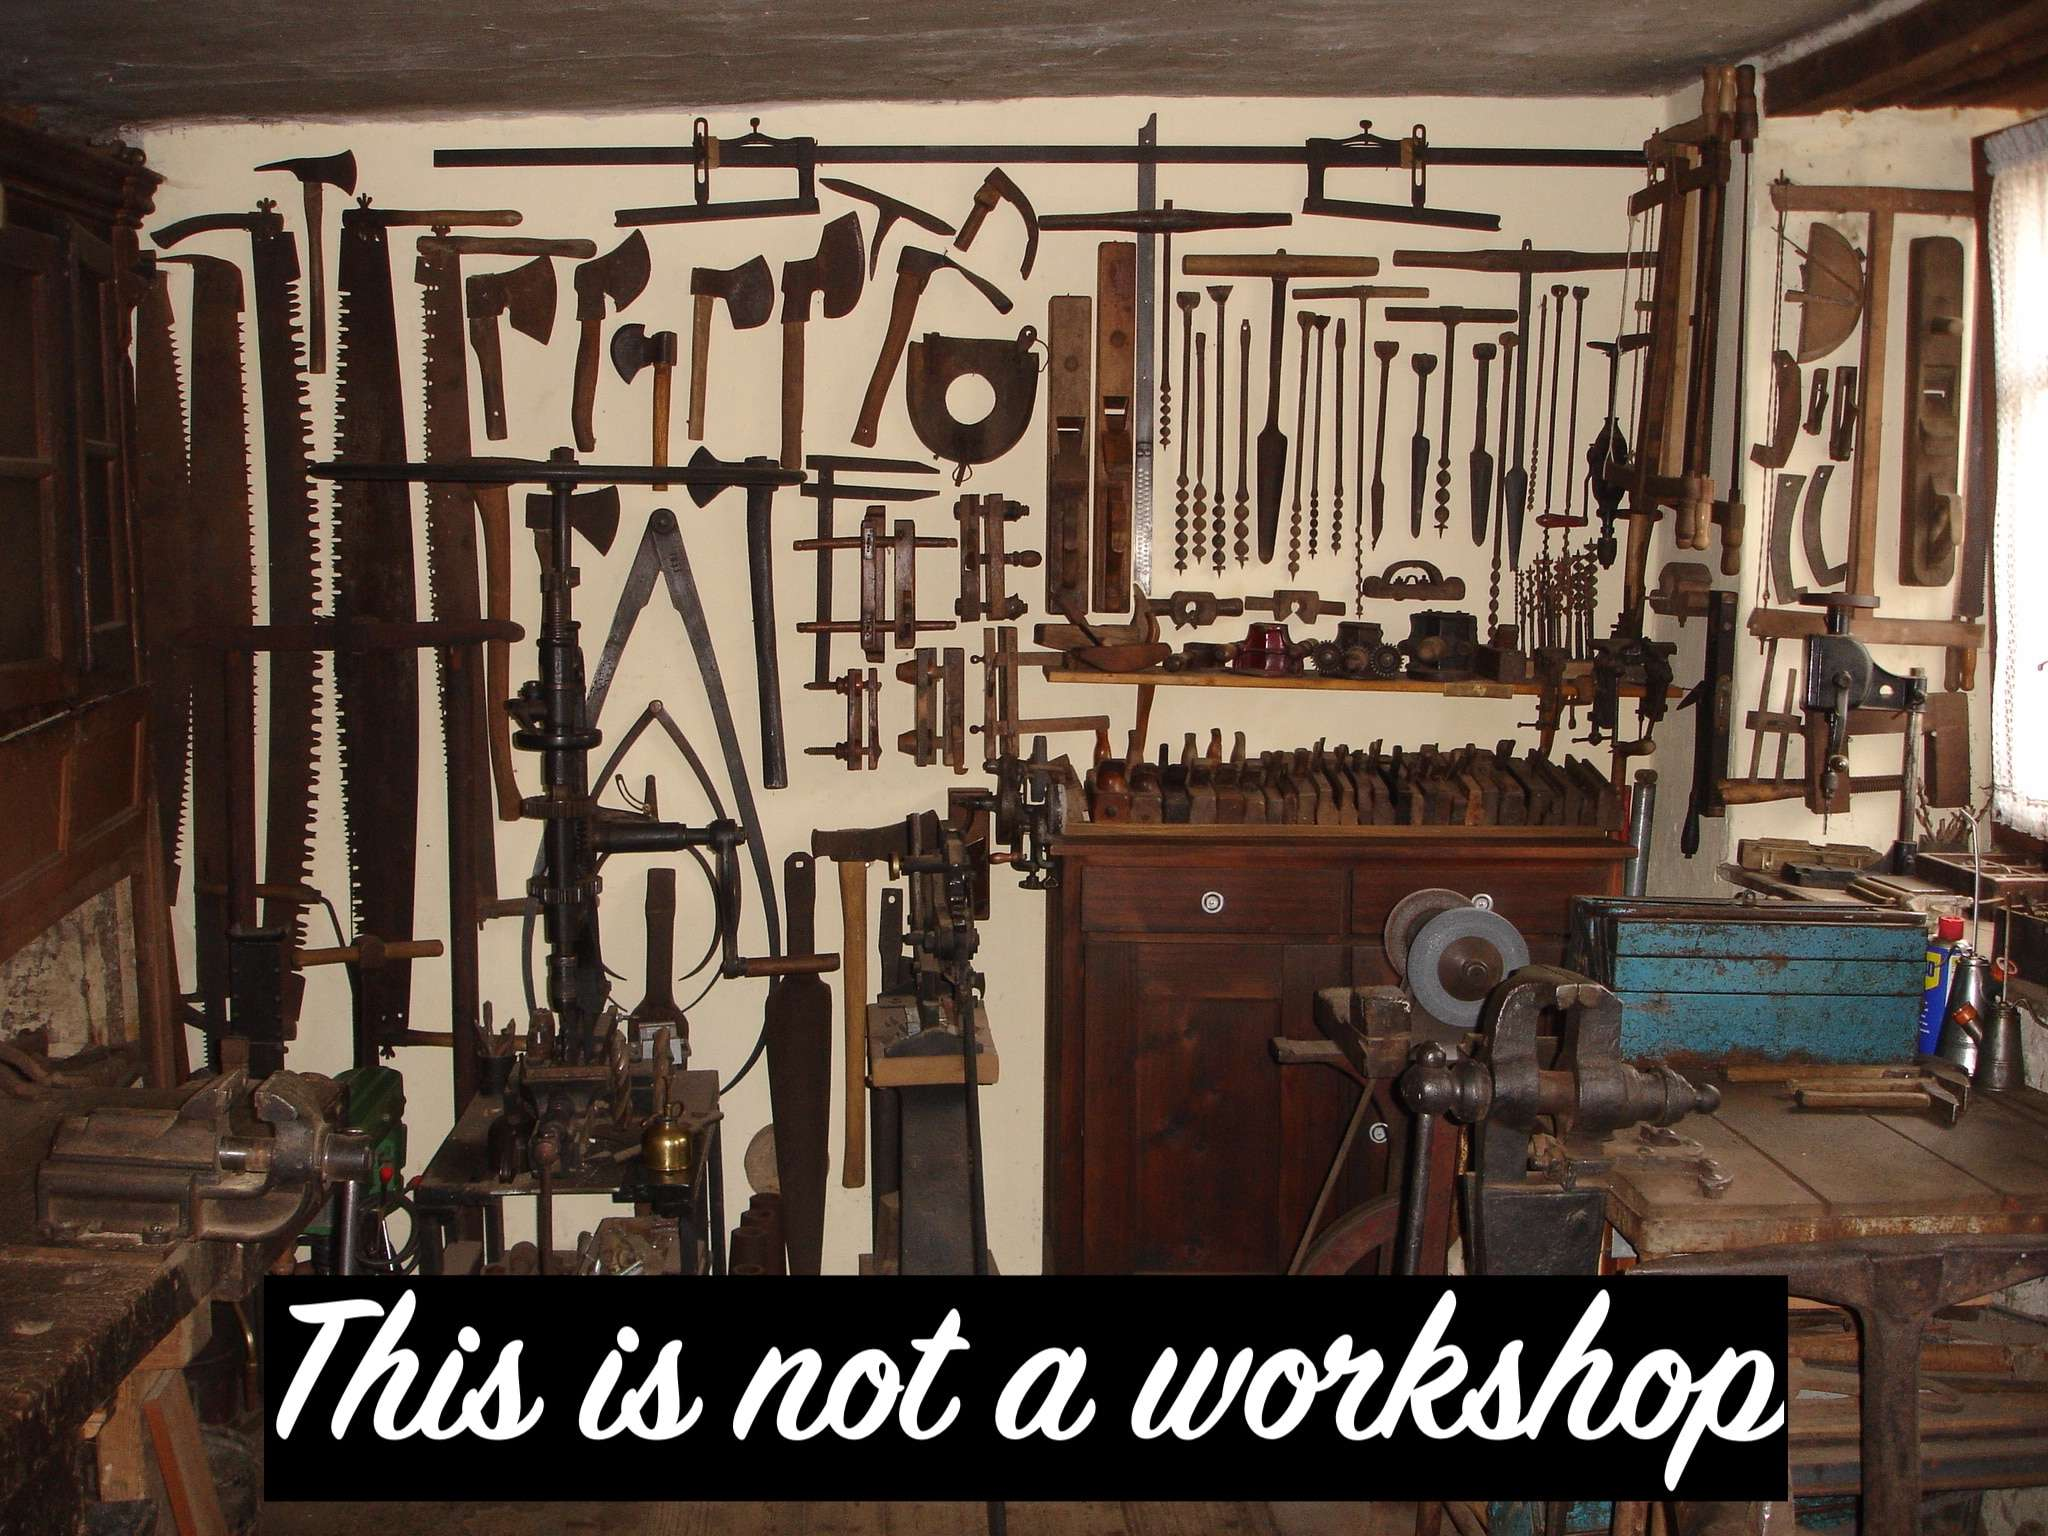 This is not a workshop. Why don't we get workshopping right?